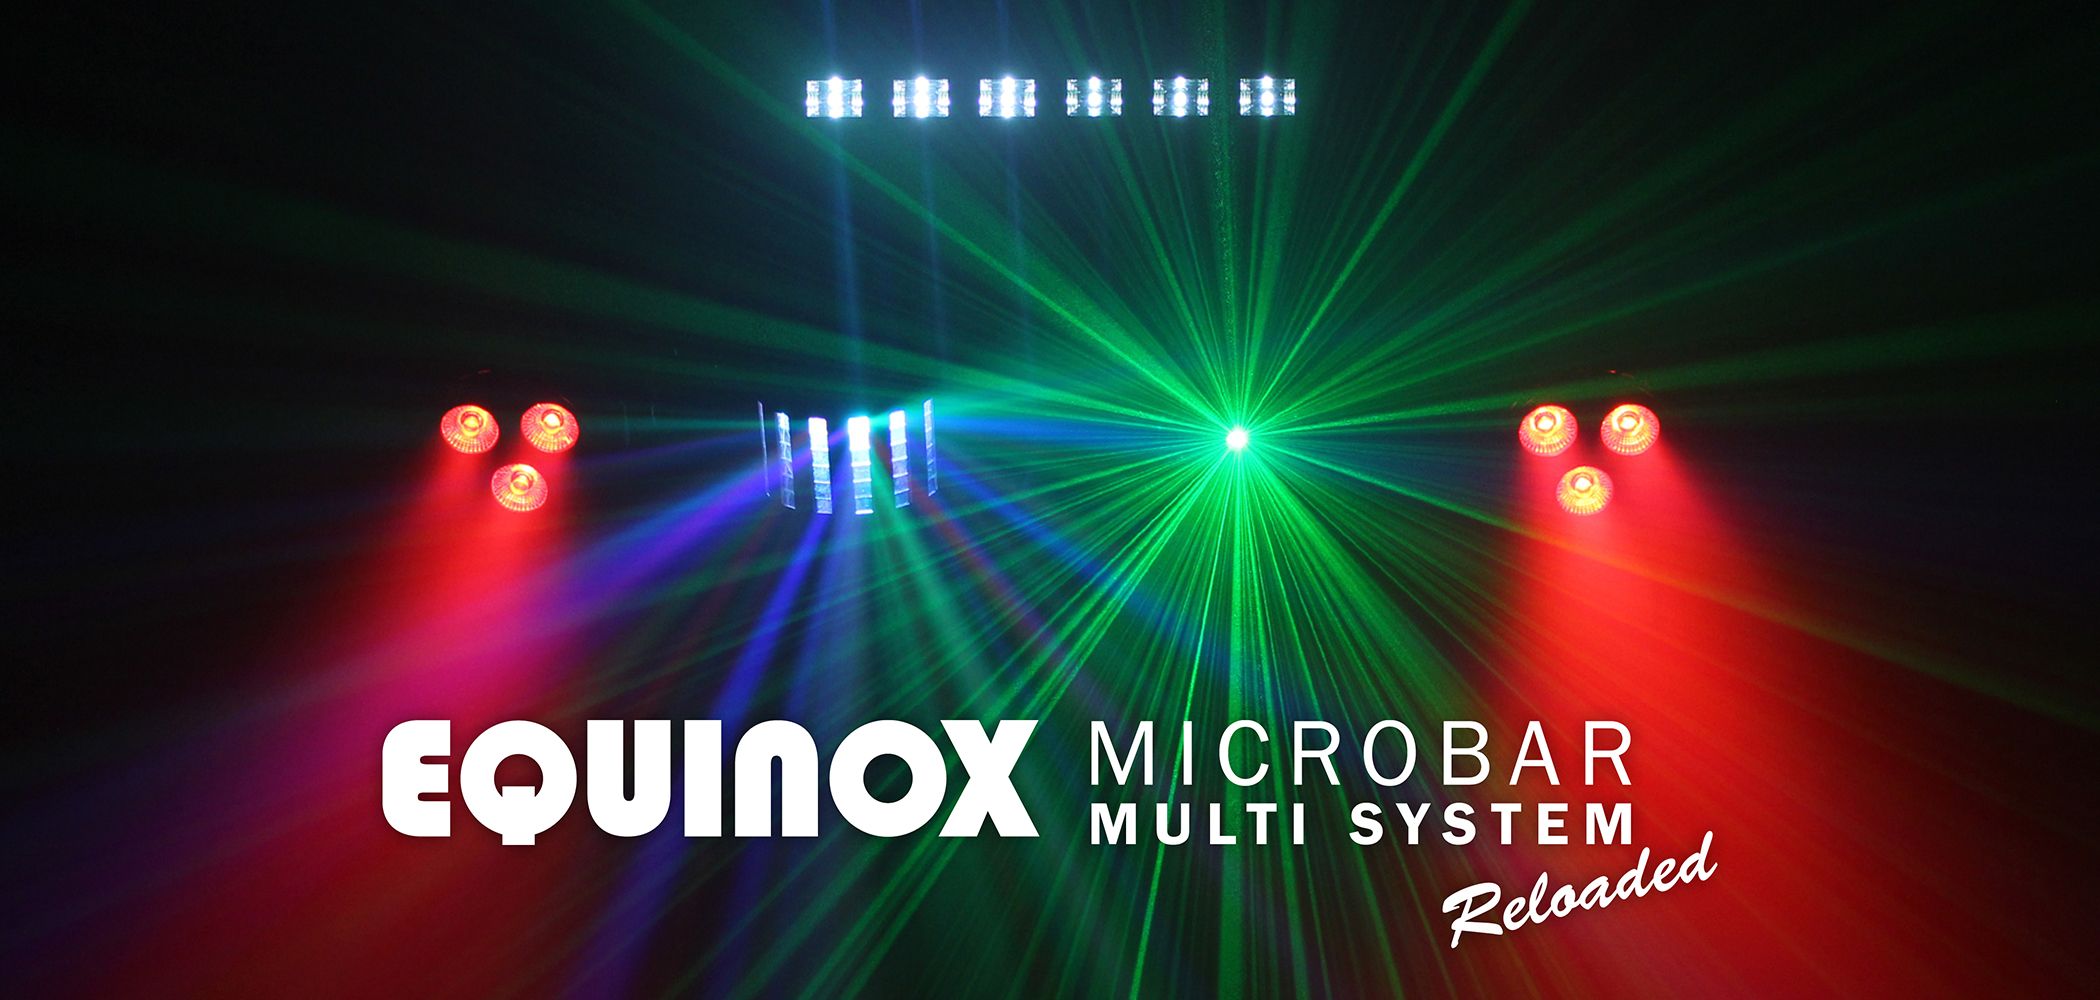 Equinox Microbar Multi System Reloaded